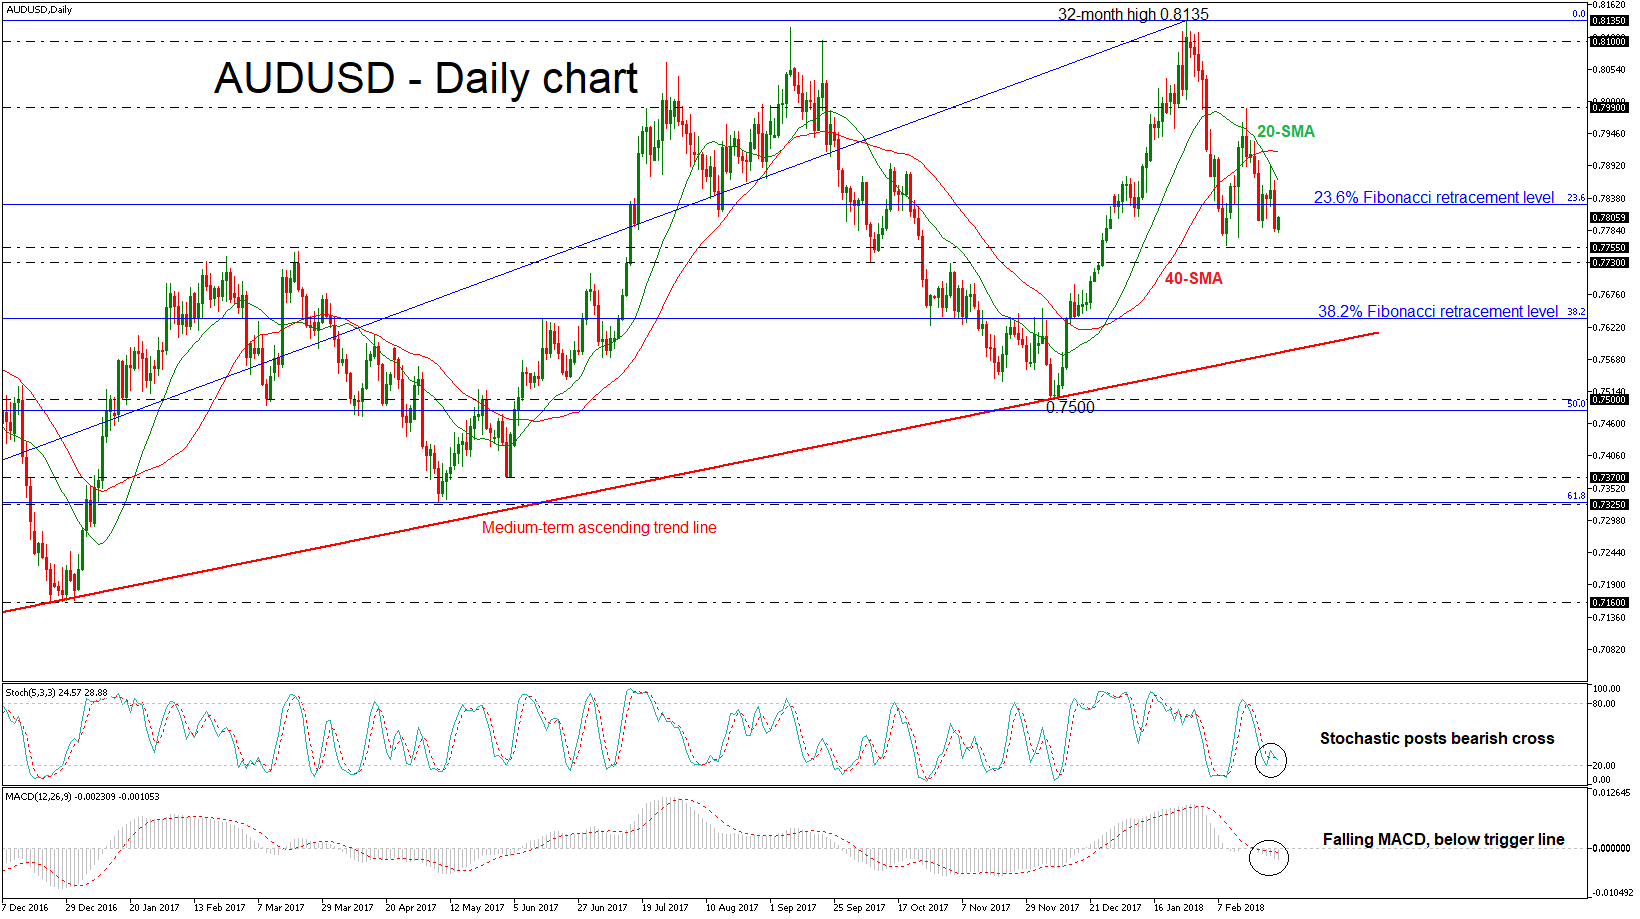 AUD/USD Daily 28 FEB 2018 | EconAlerts